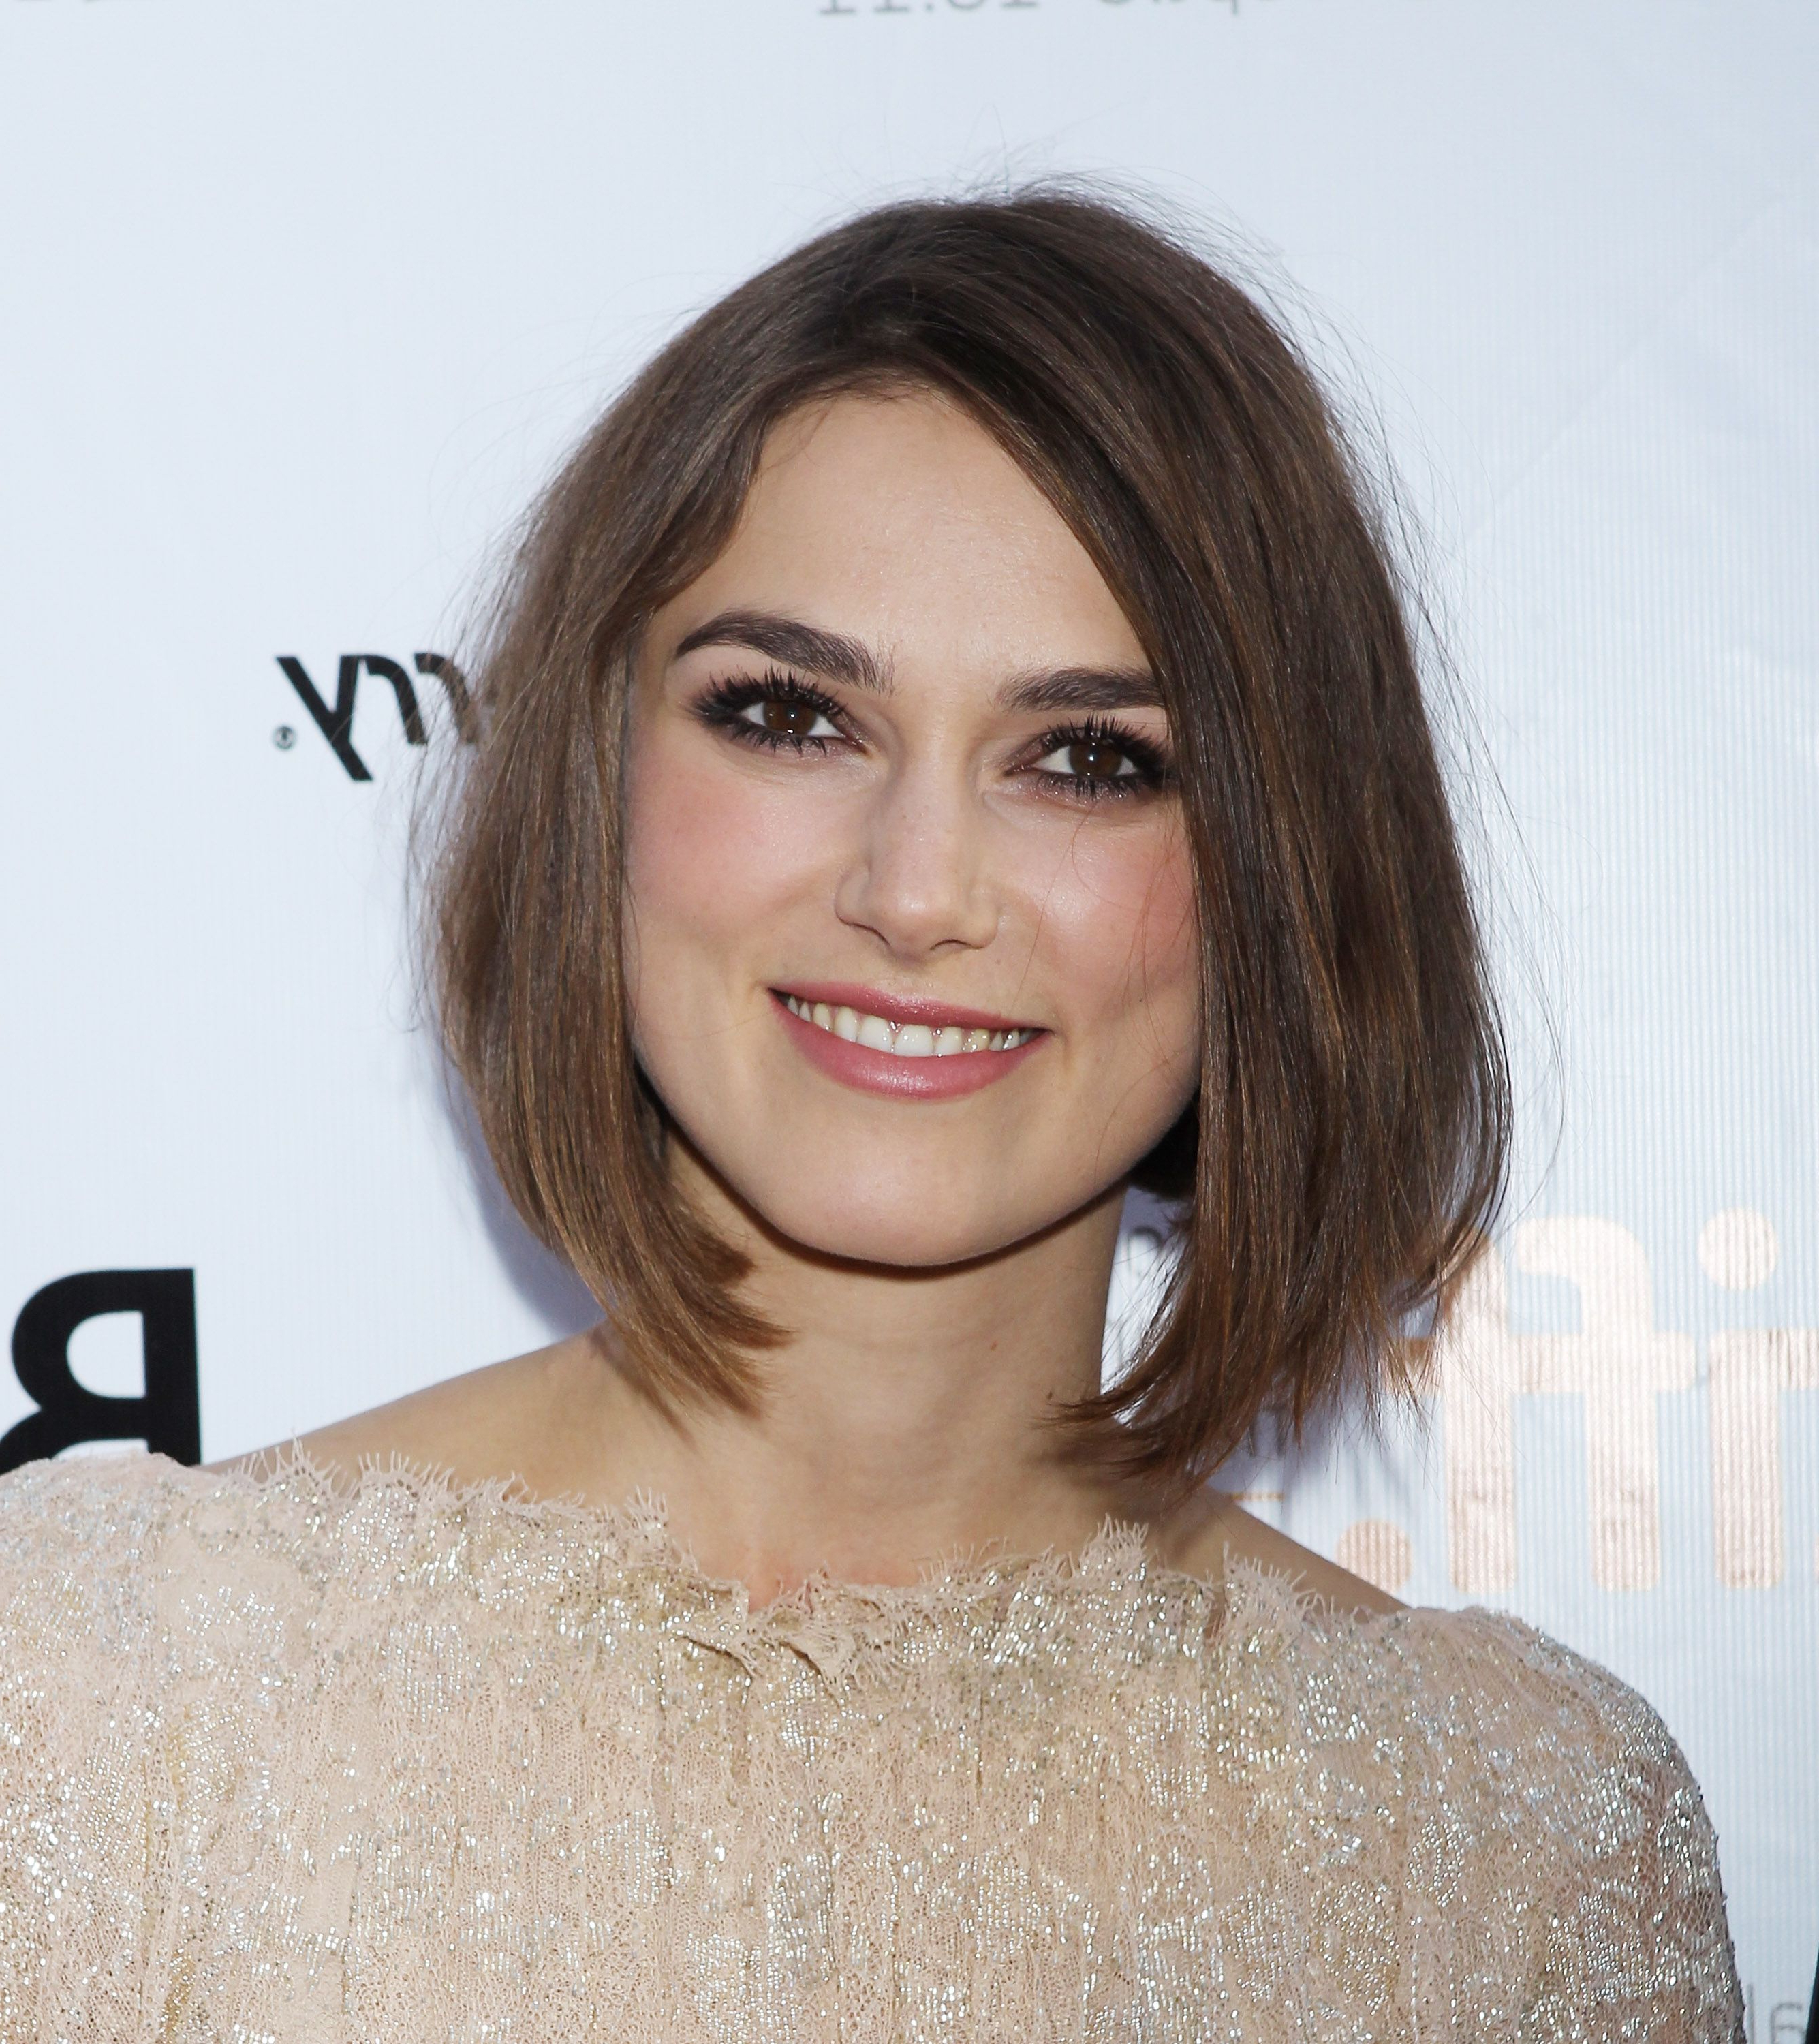 The 13 Best Hairstyles For Square Faces Regarding Short Haircuts For Square Face (View 20 of 25)